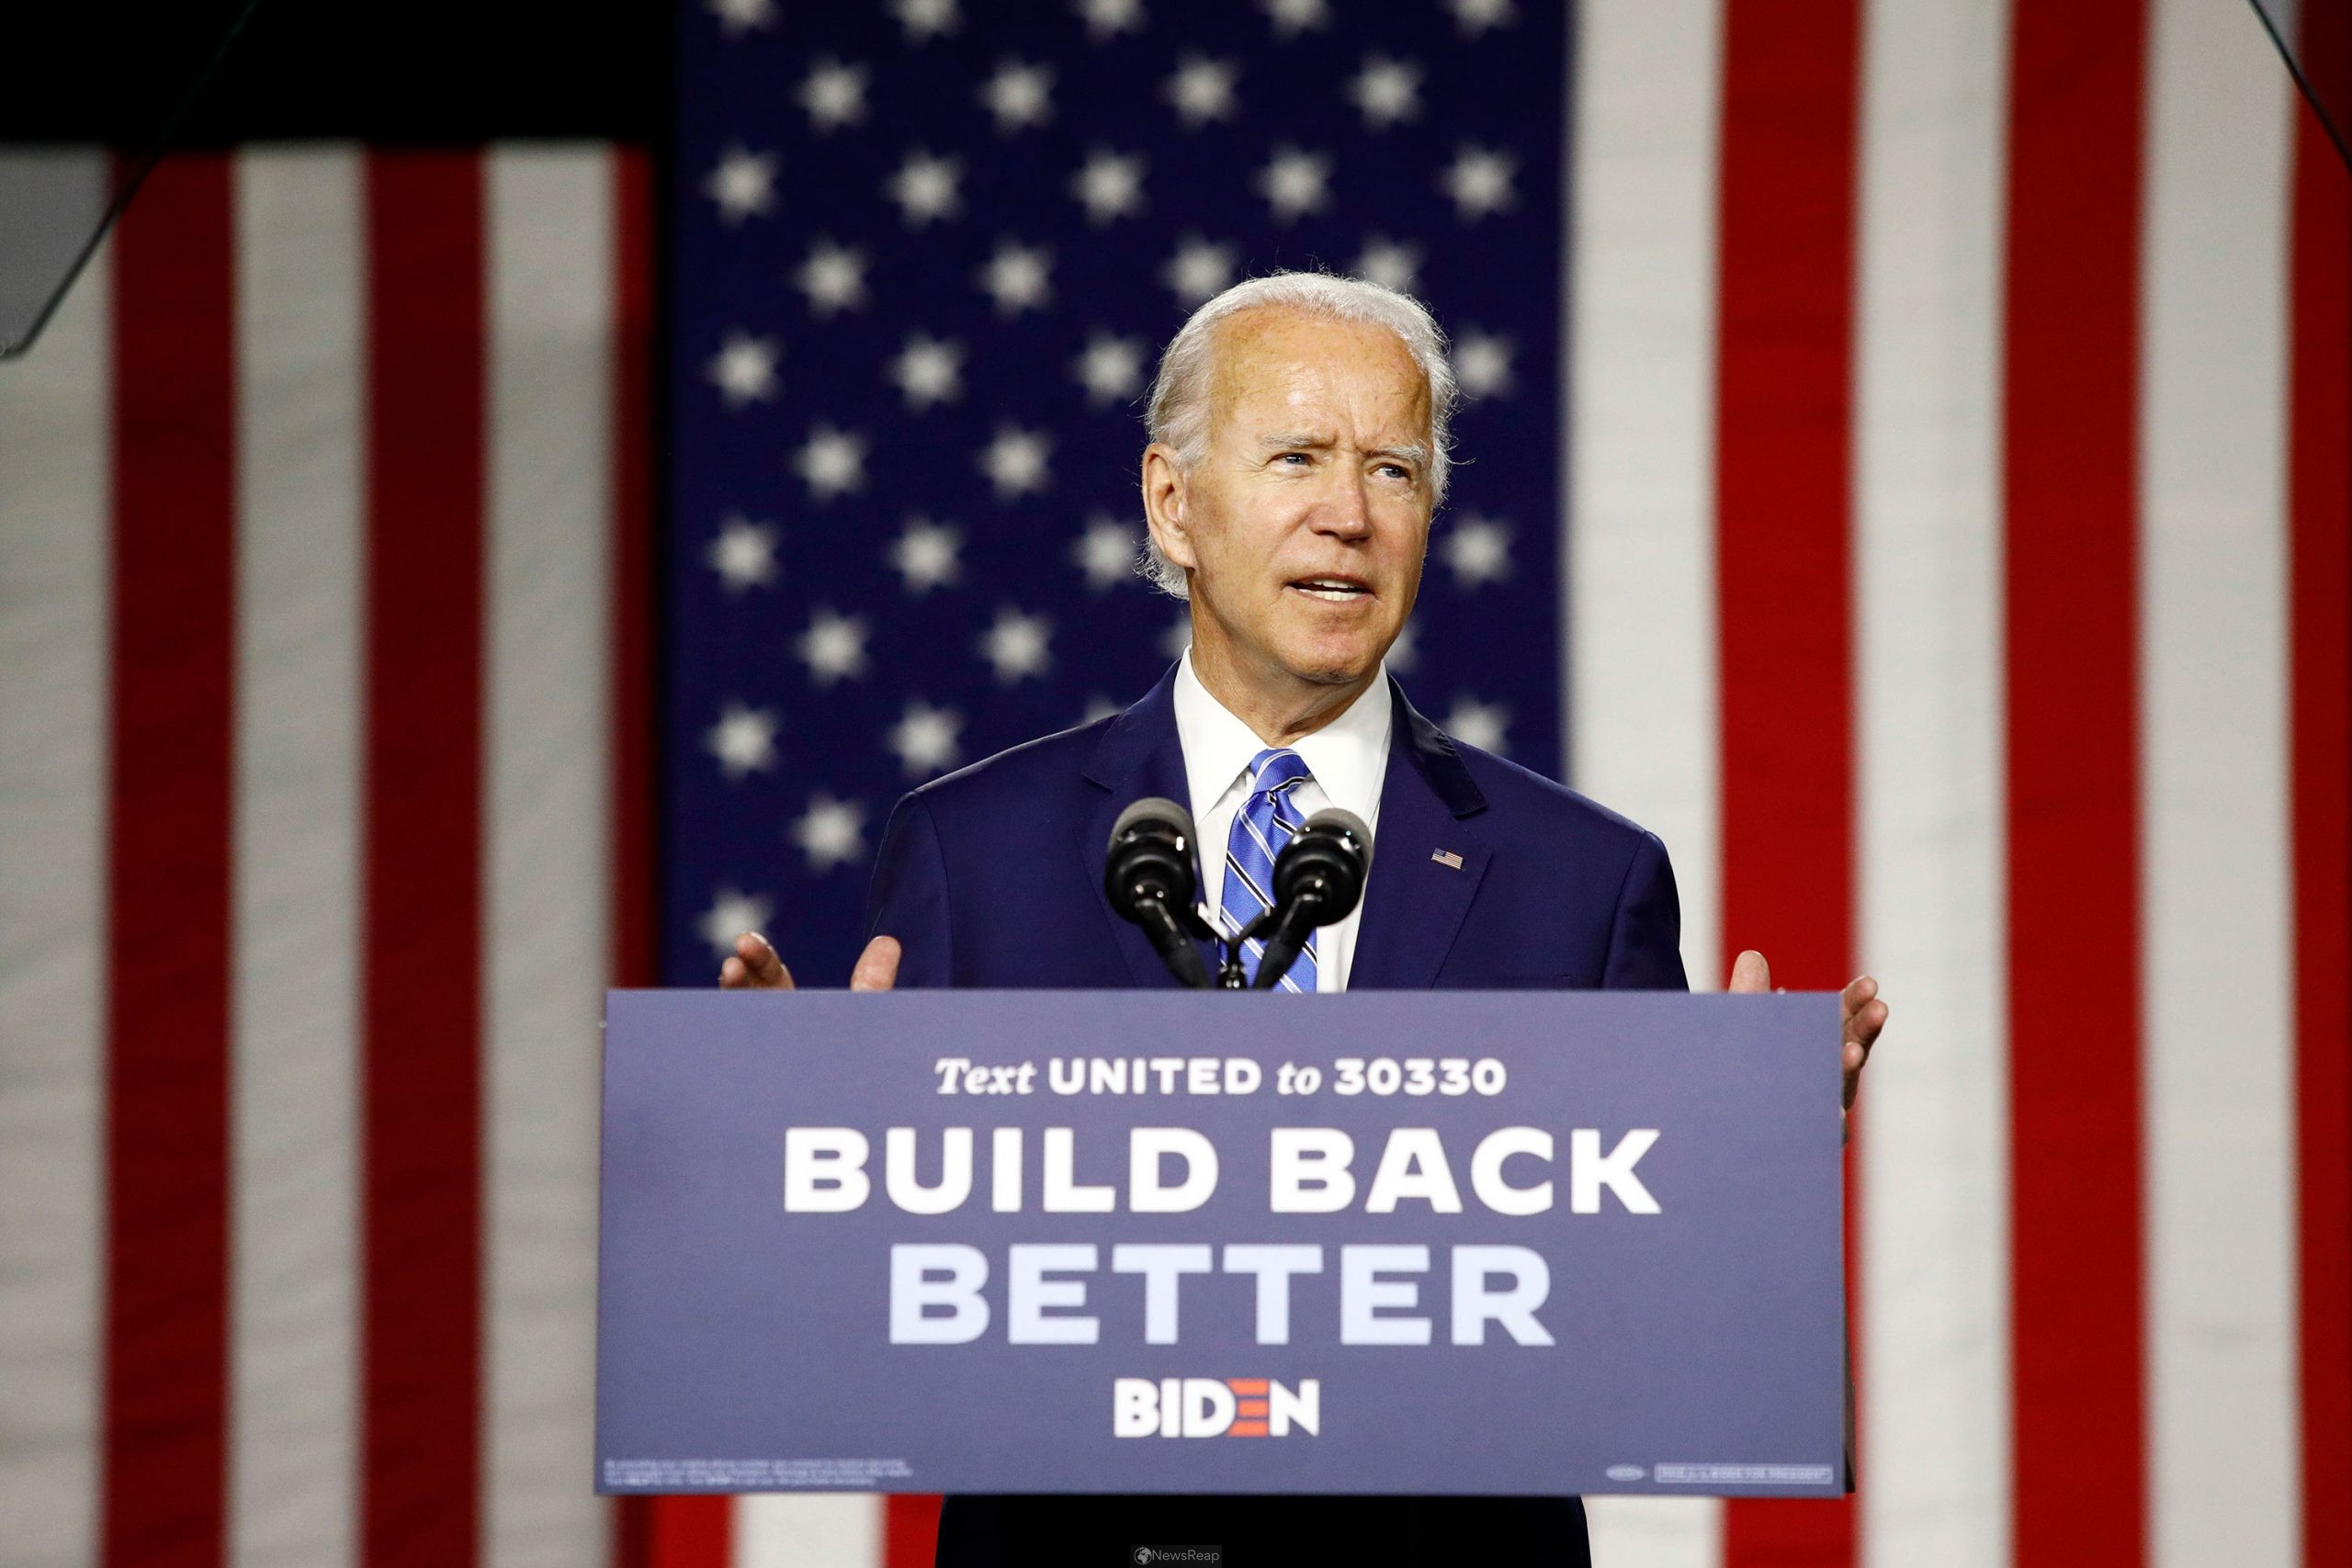 Biden could take quick first steps on long climate policy road